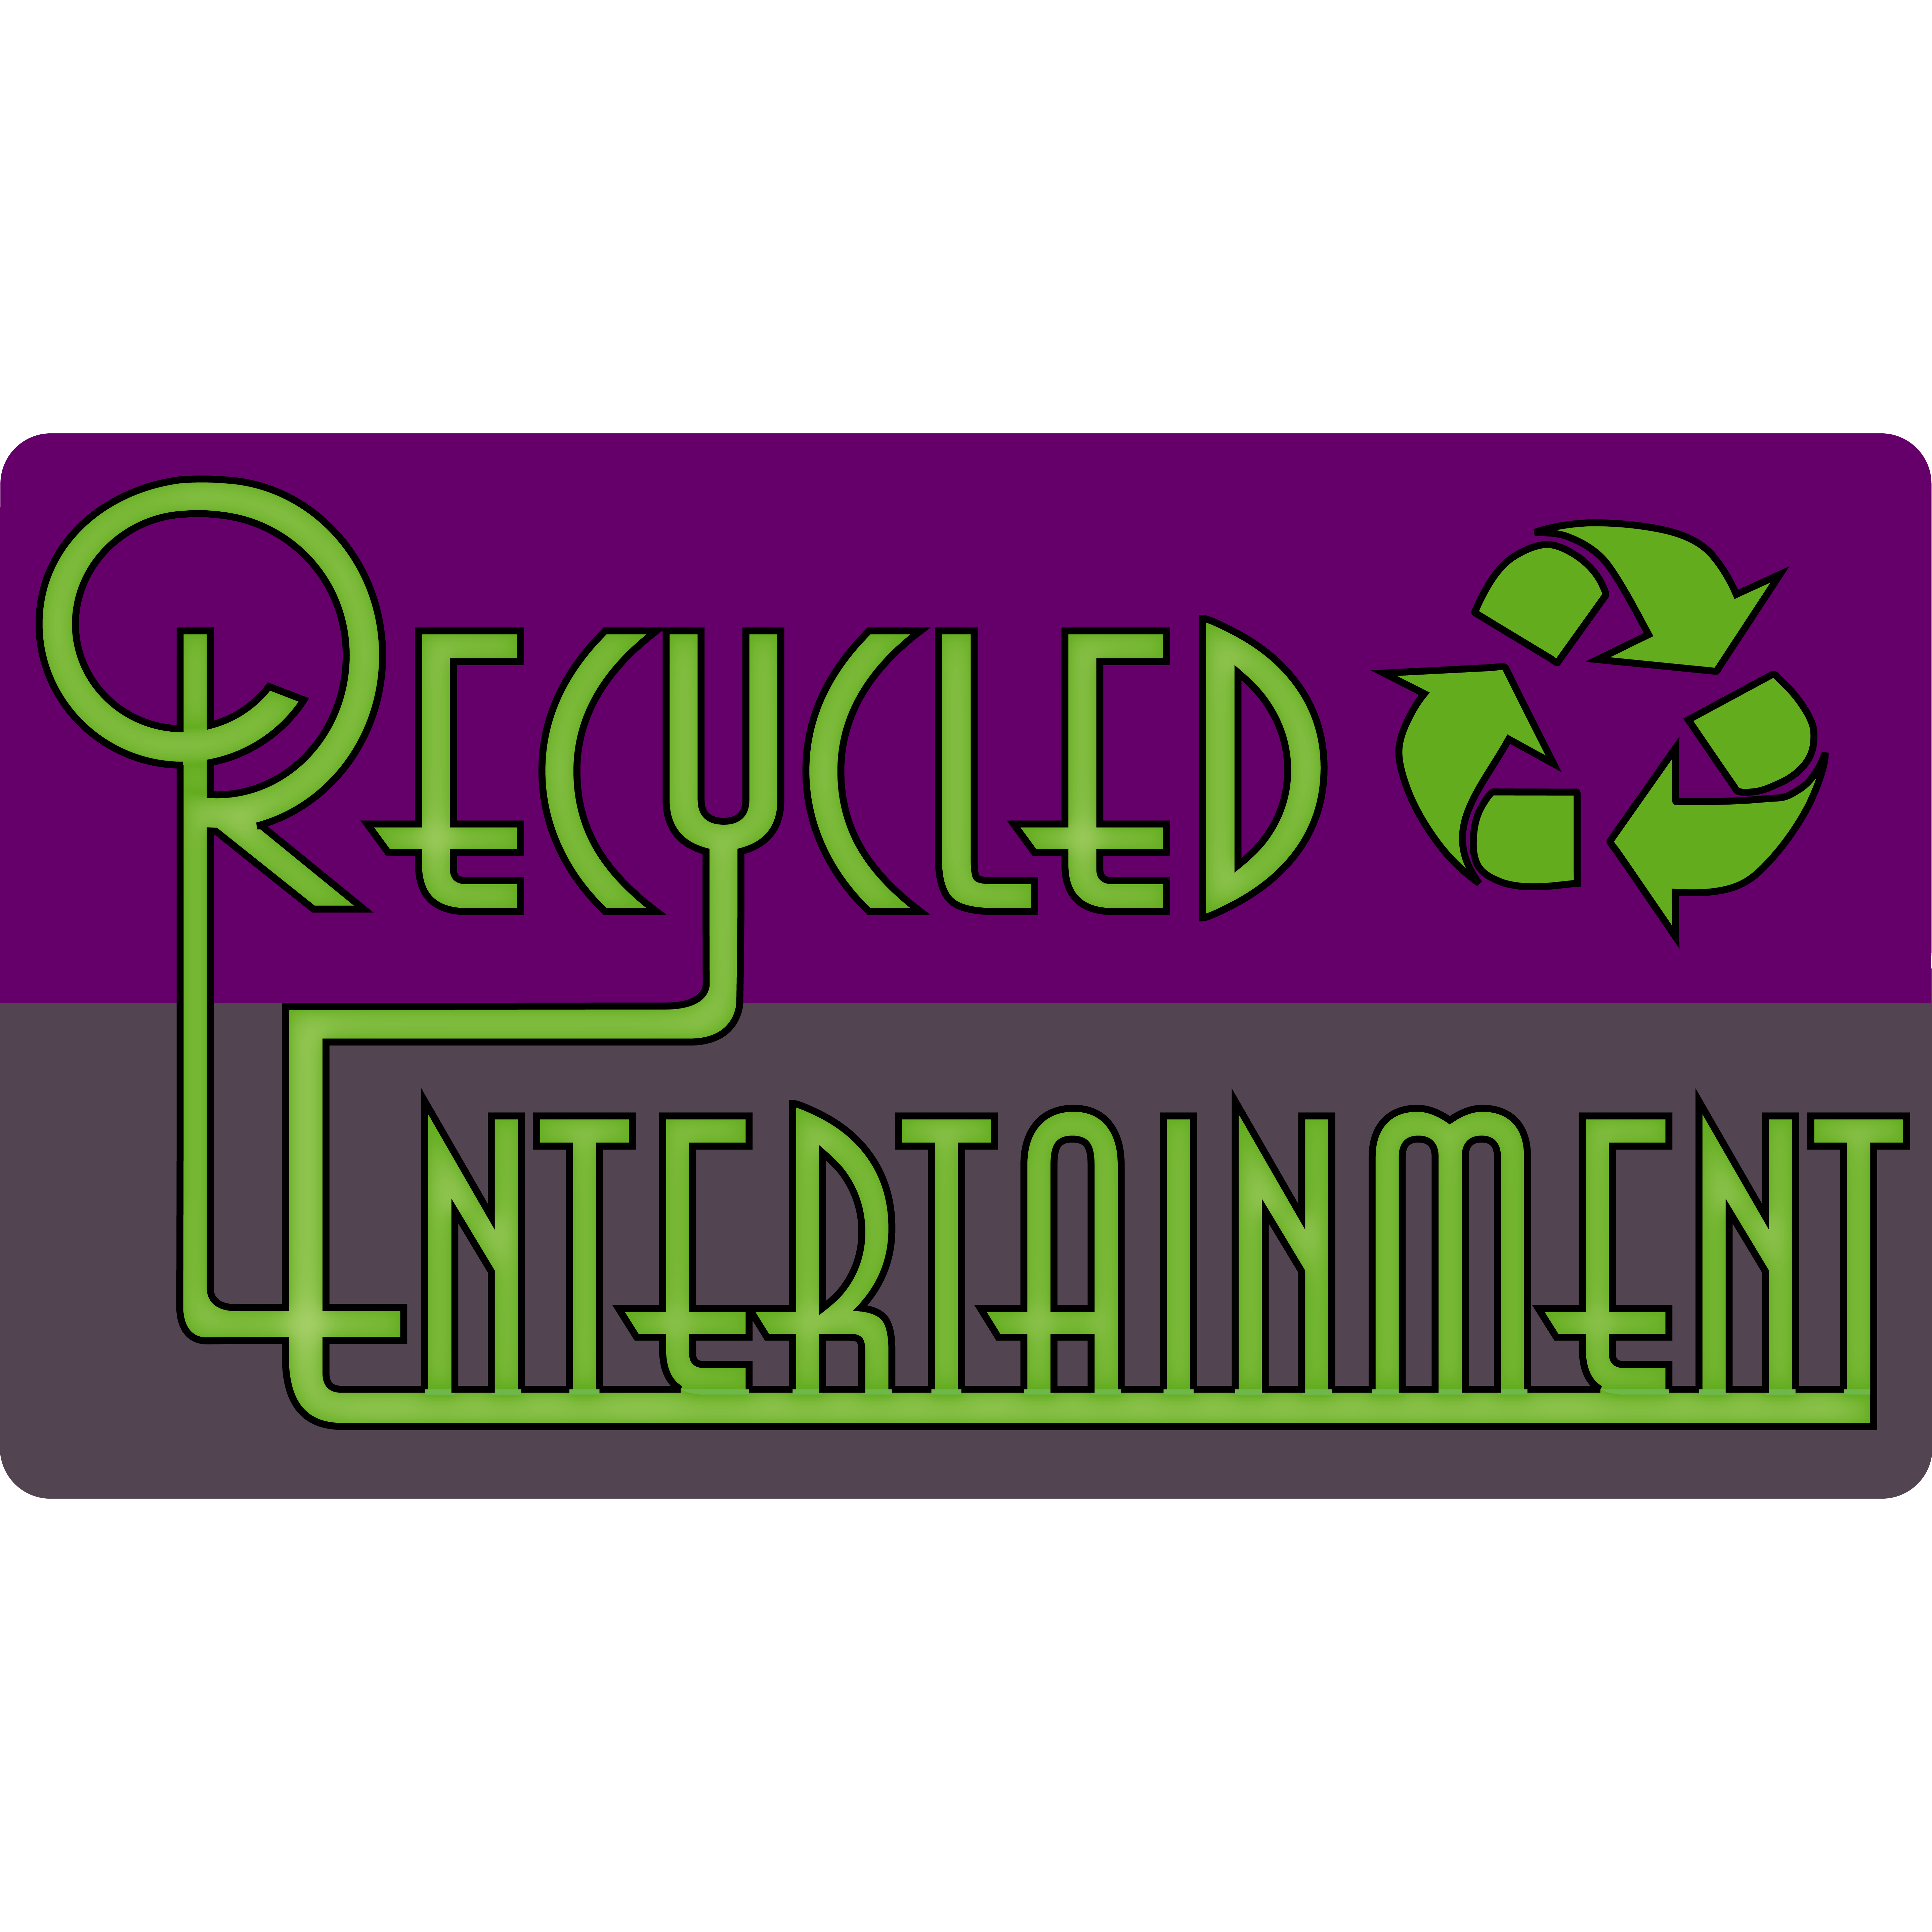 12052 Recycled Entertainment